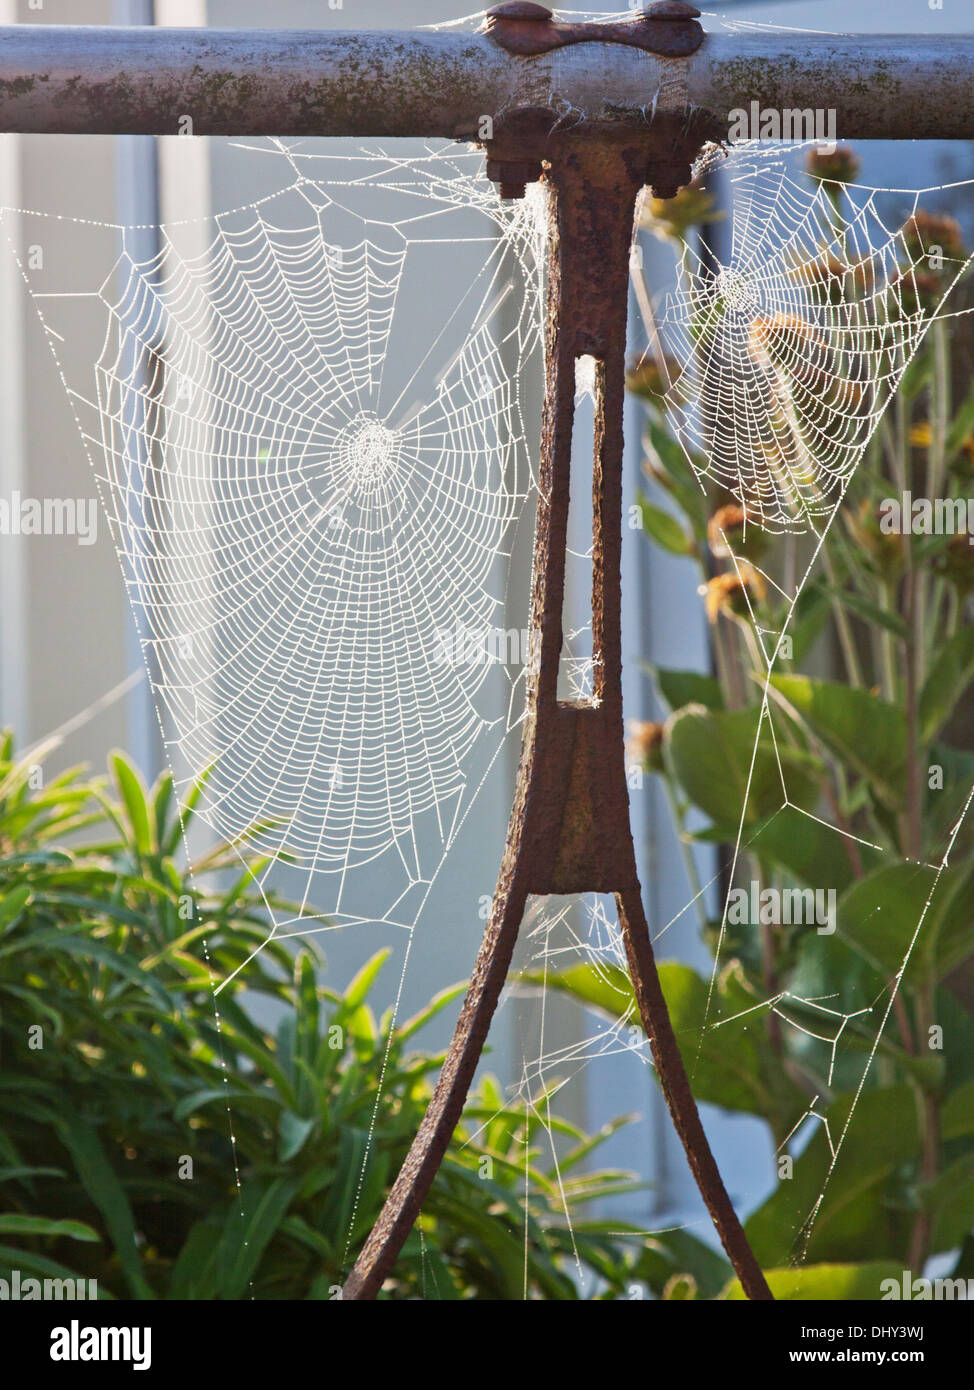 Spiders' webs attached to an old garden roller glistening with dew in the early morning sunlight - Stock Image